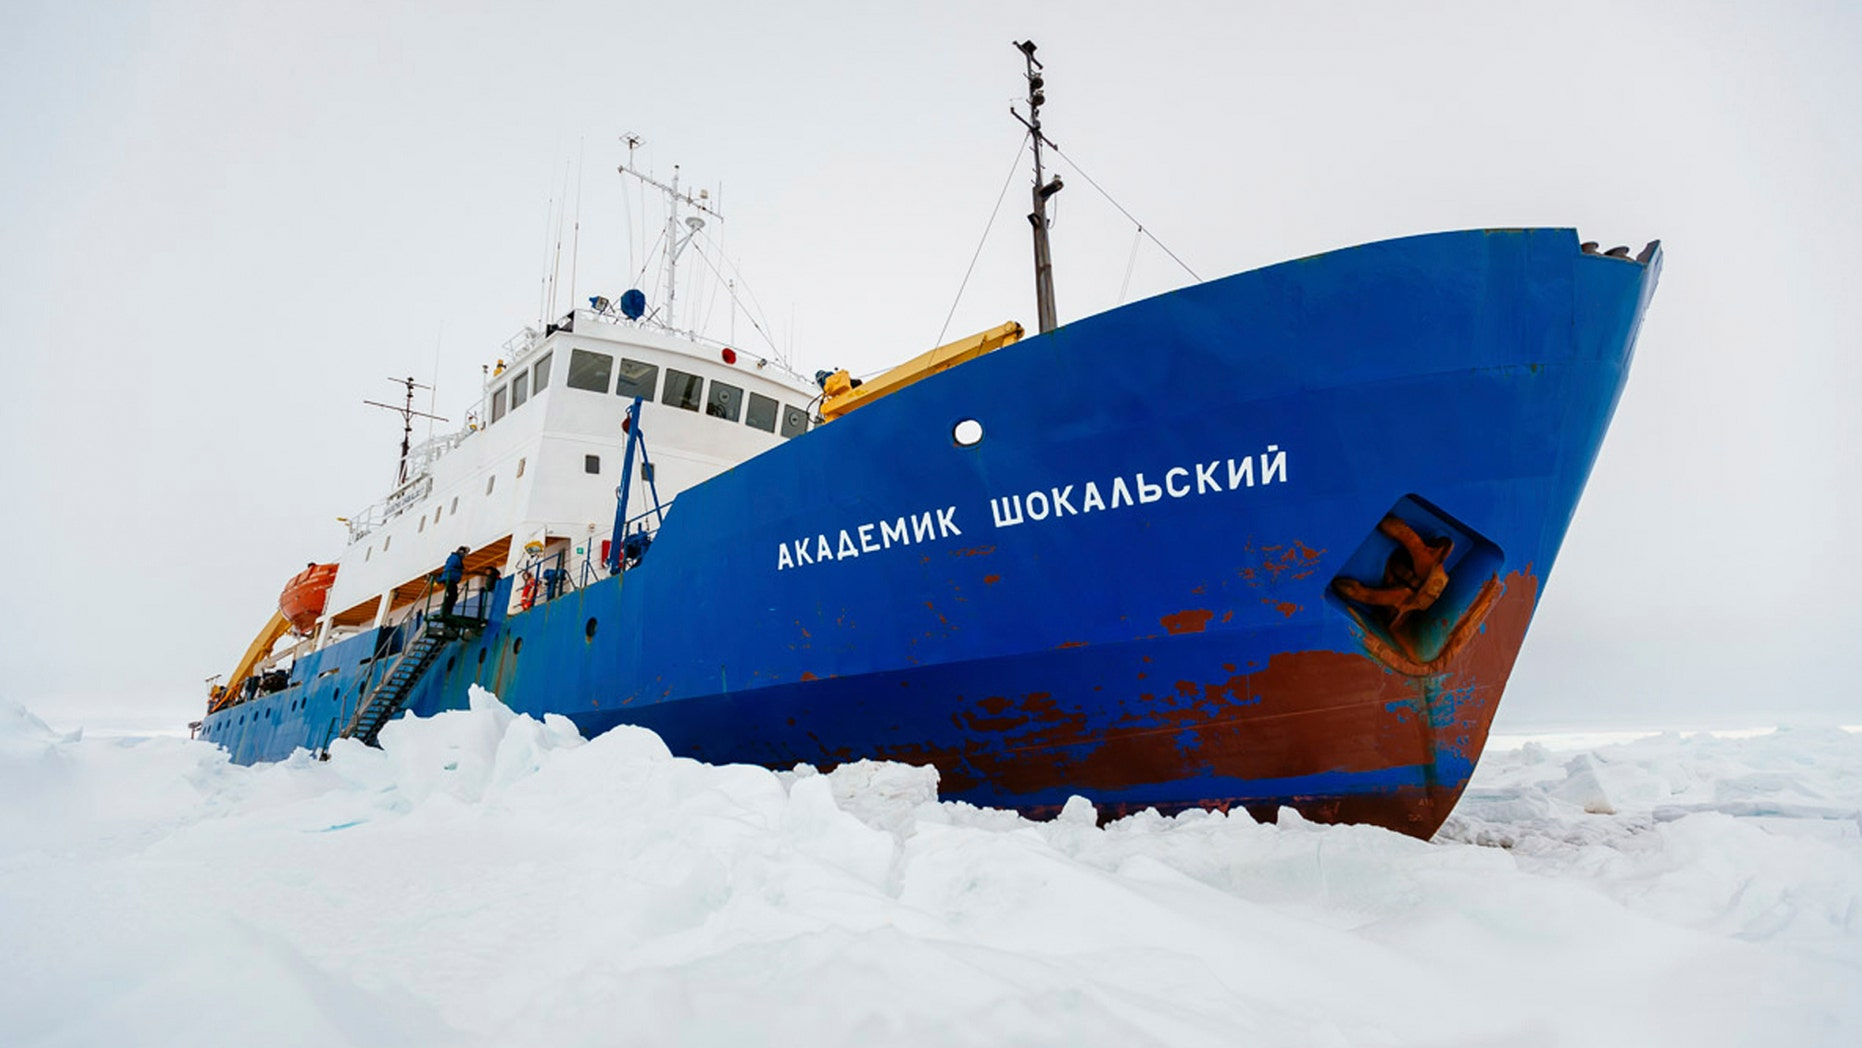 7638033405 27, 2013: In this image provided by Australasian Antarctic  Expedition/Footloose